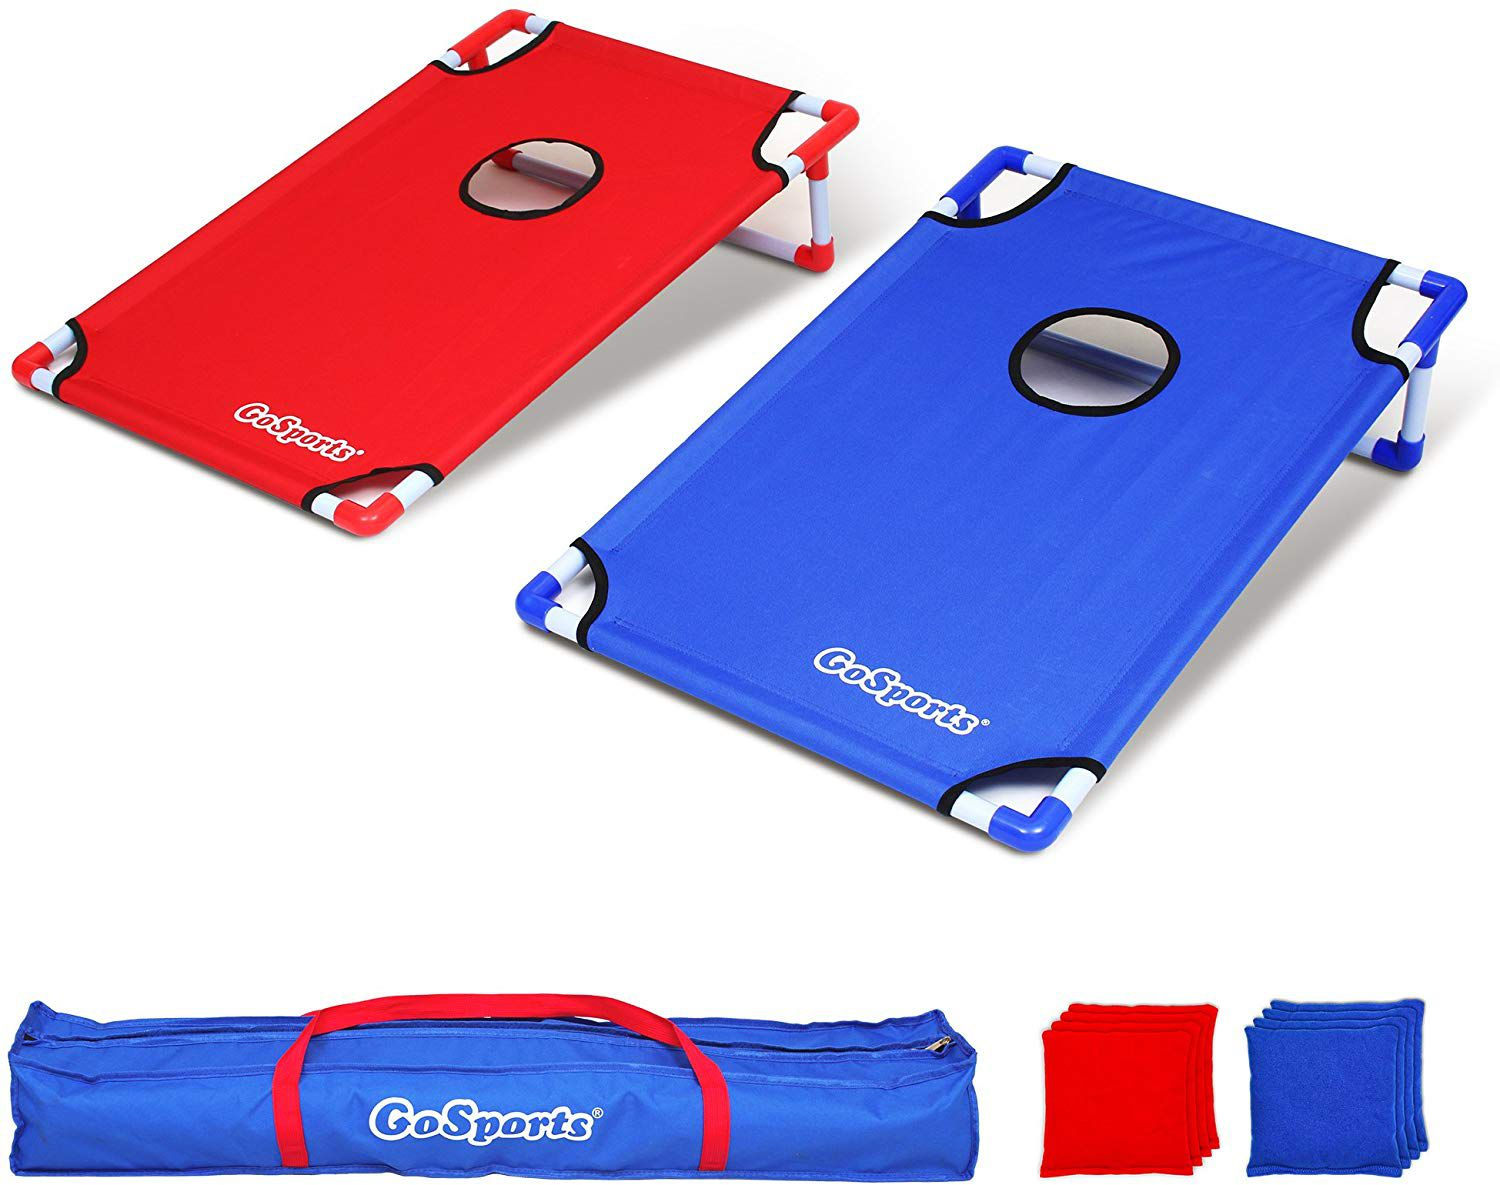 Himal Portable Assemble PVC Framed Corn Hole Outdoor Game